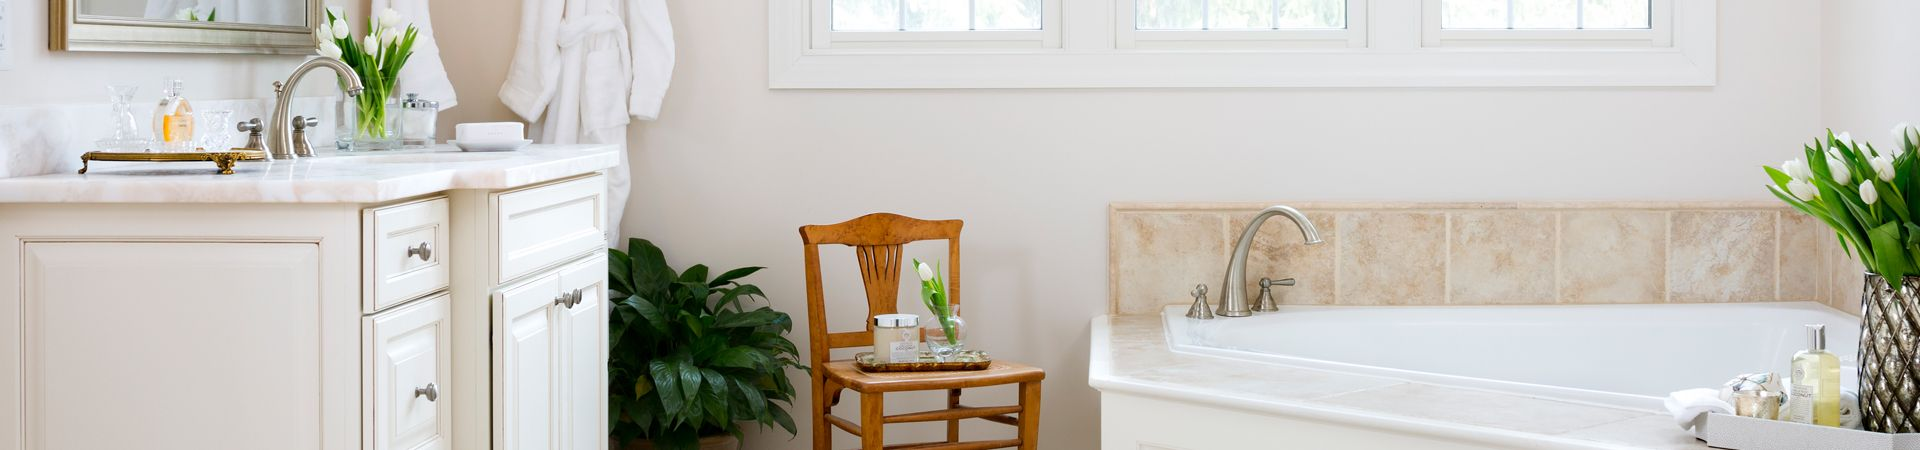 Bathroom remodeling in Fairfax VA, Northern Virginia, MD, DC